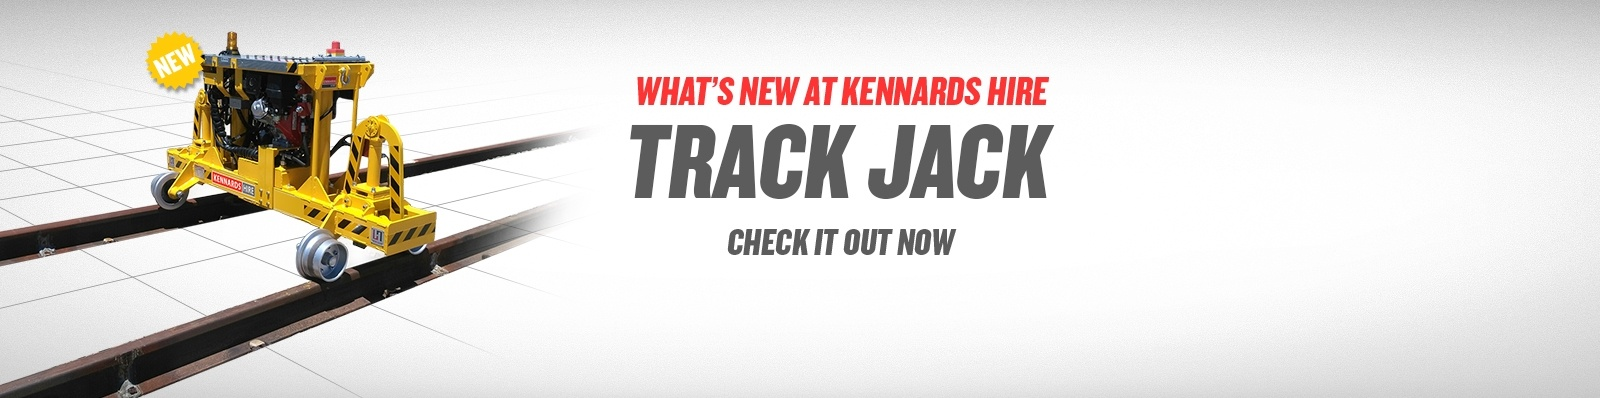 Introducing the Track Jack